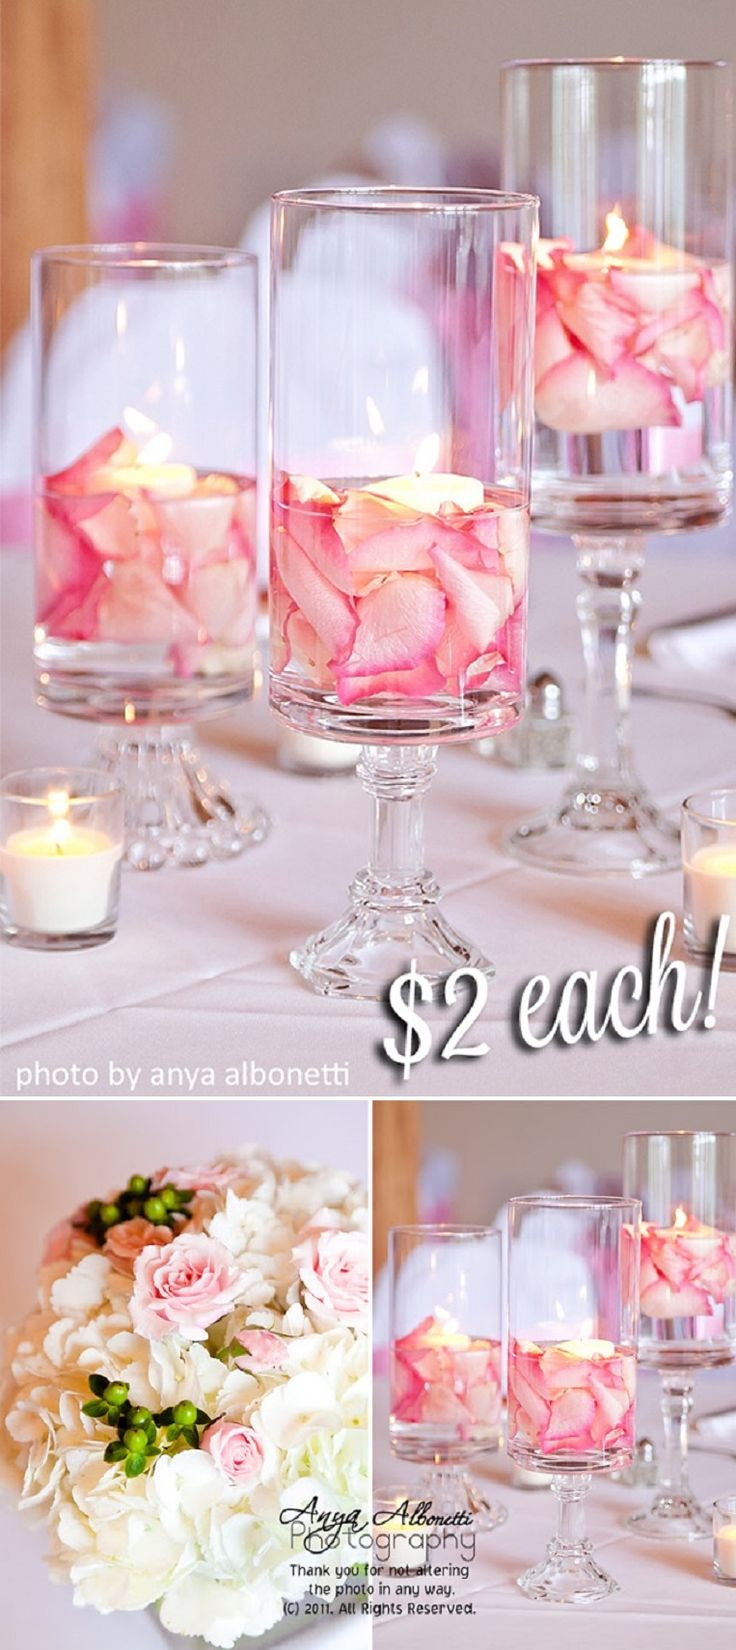 DIY Floating Candles with Rose Petals - 15 Cozy DIY Floating Candle Centerpieces for Any Occasion